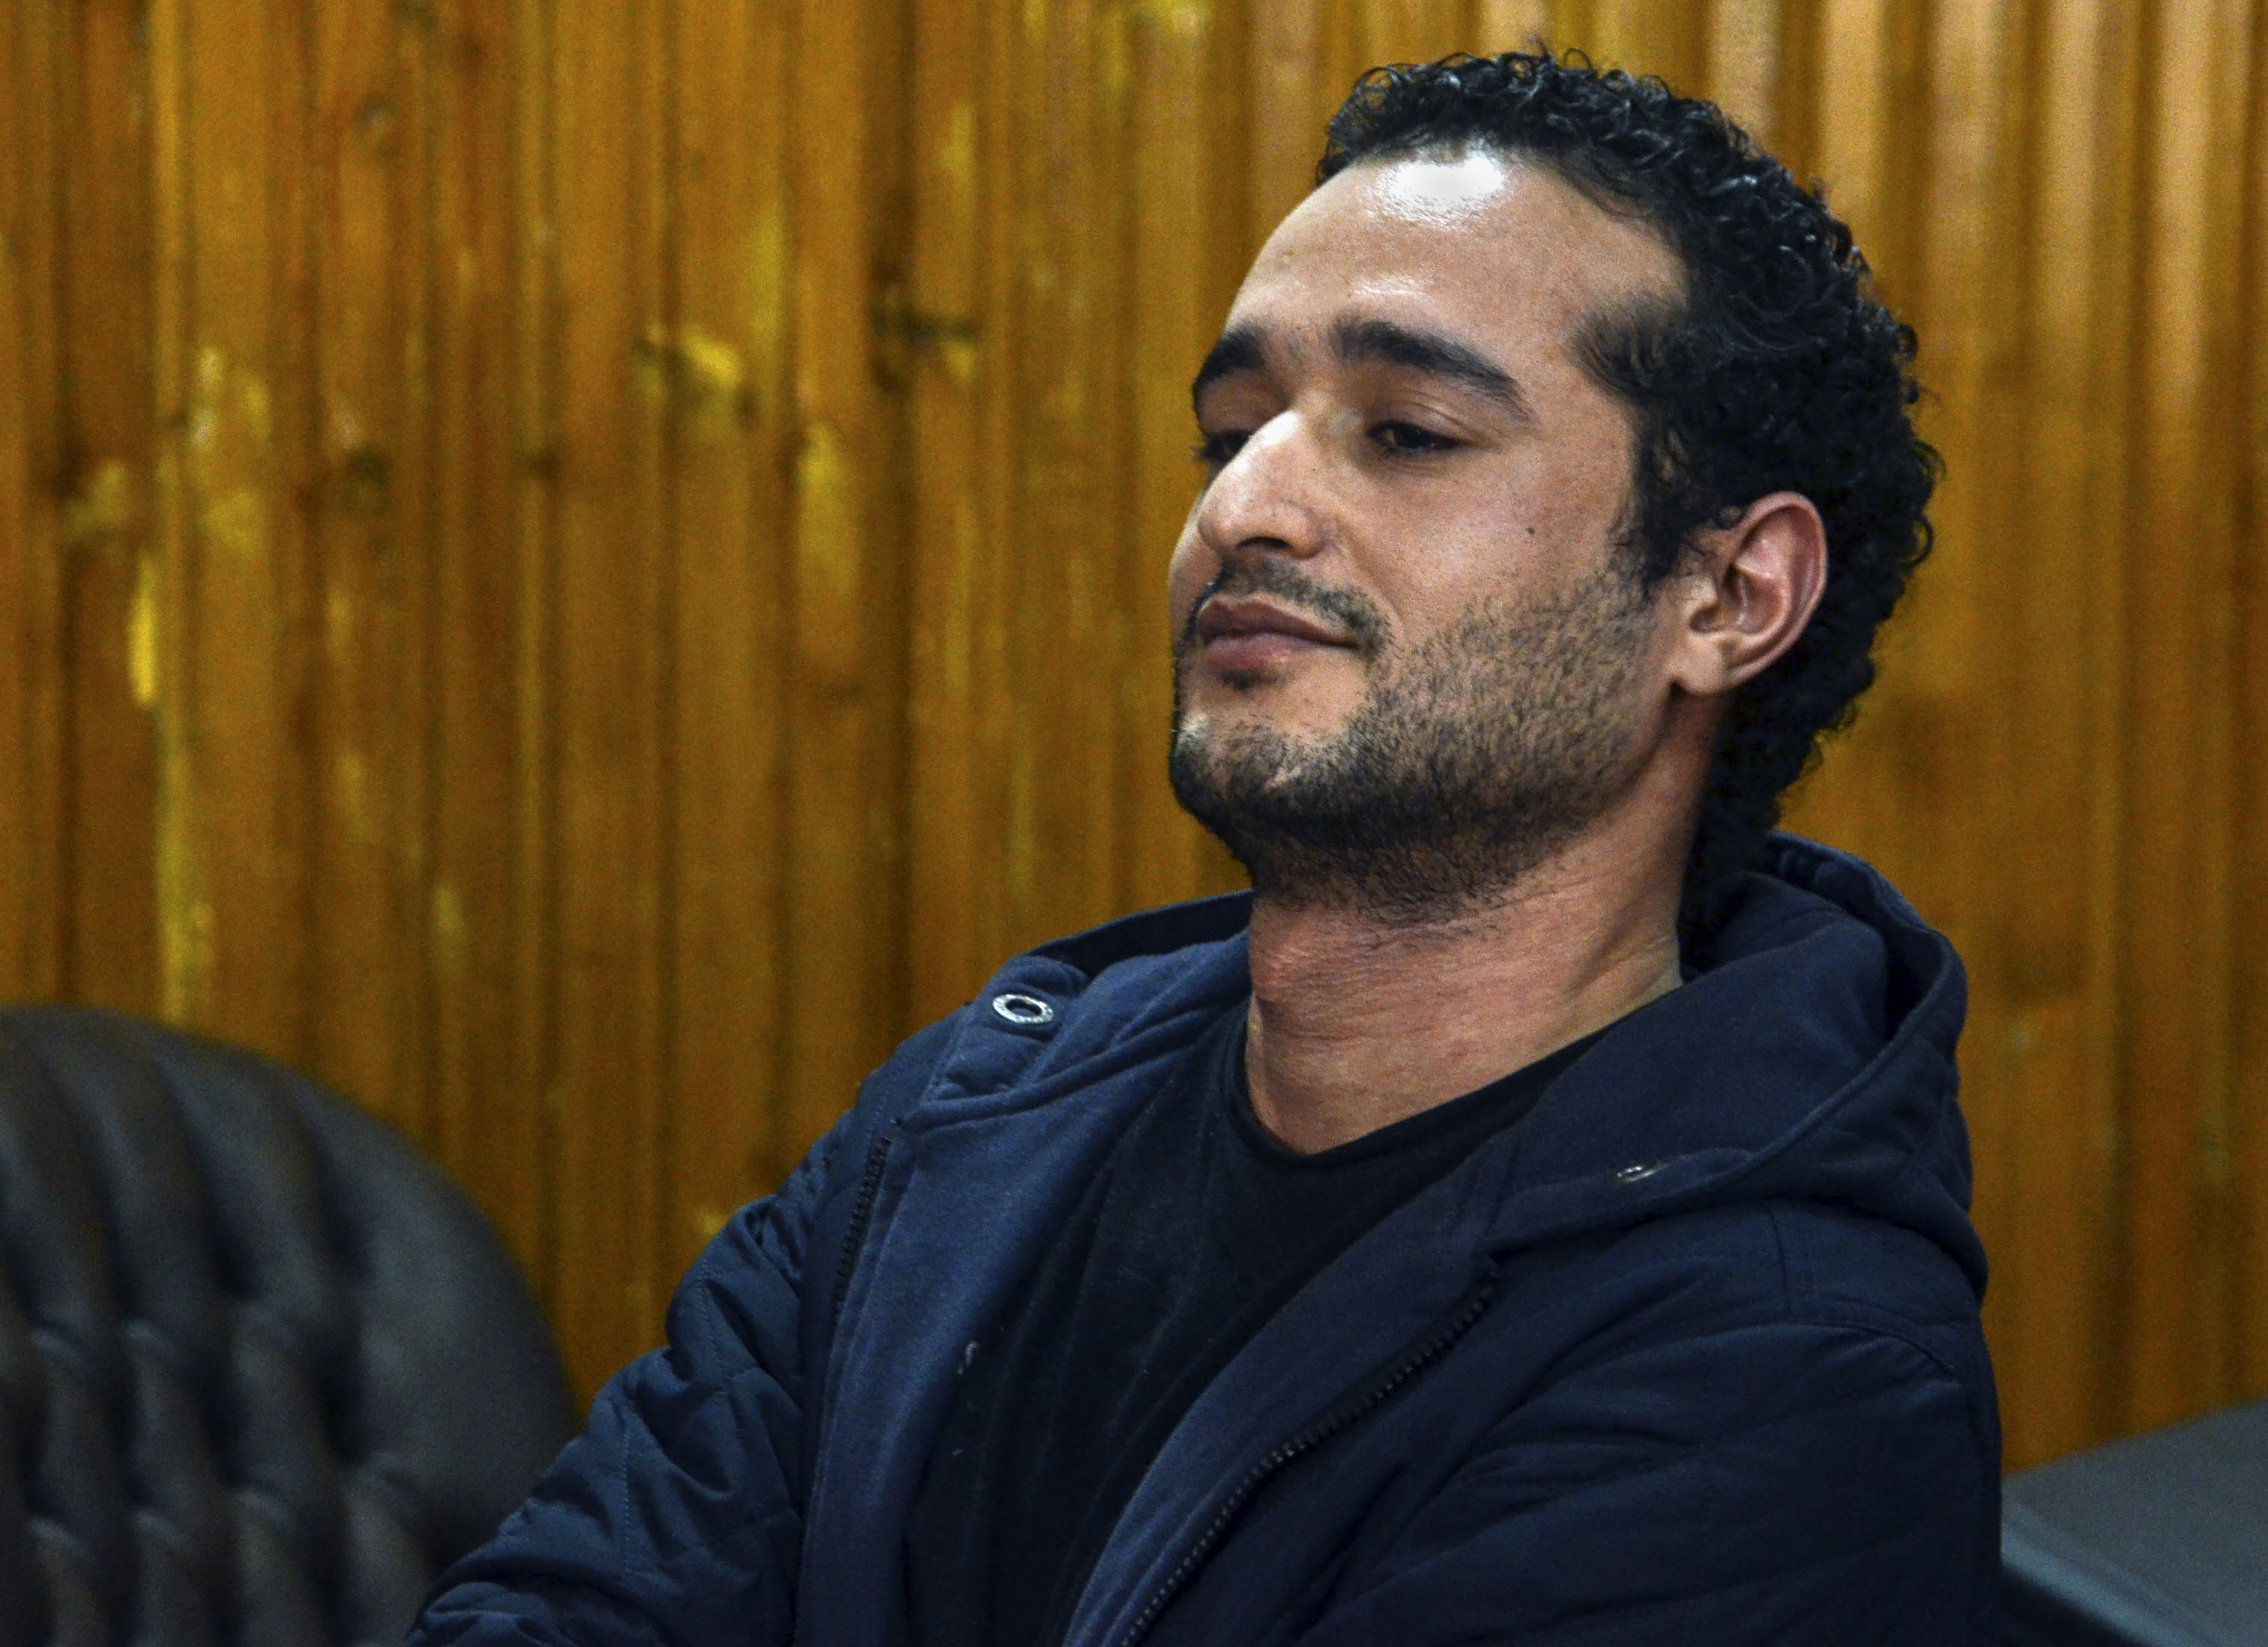 "Ahmed Douma, one of the leading activists behind Egypt's 2011 uprising, attends a court hearing in a case against 230 people including Douma, for taking part in clashes between protesters and security forces, in a courtroom of Torah prison, Cairo, Egypt, Wednesday, Feb. 4, 2015. Judge Mohammed Nagi Shehata found them guilty and sentenced them, including Douma, to life in prison. Last year, Egypt's powerful lawyers union criticized Shehata for ""disparaging"" and ""terrorizing"" Douma's defense team after he referred five of the team's six lawyers to prosecutors for investigation. The union instructed all members to boycott Shehata's court. (AP Photo/Mohammed El-Raaei)"